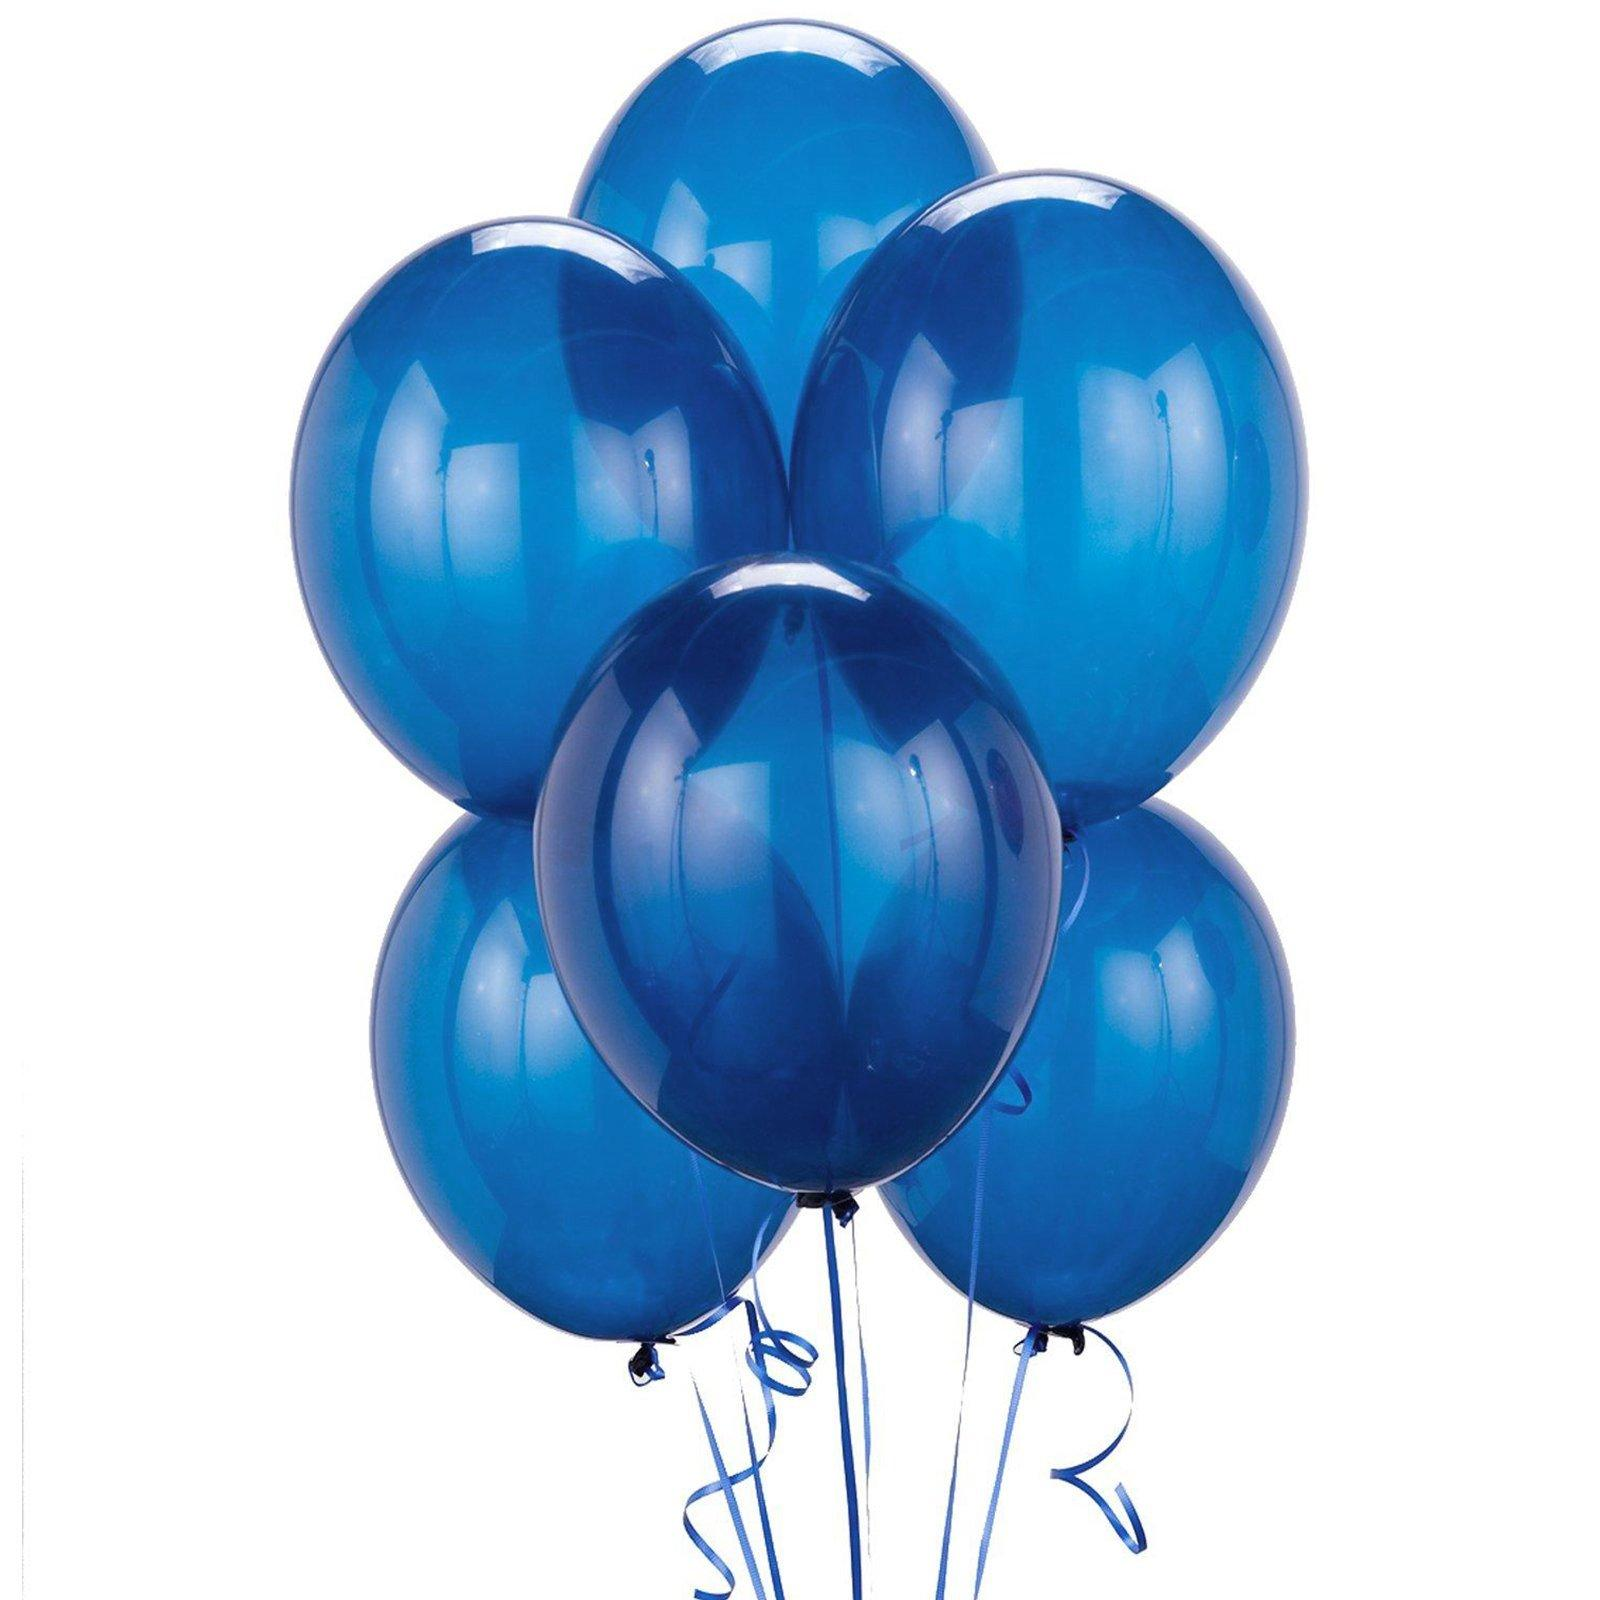 "Pioneer Balloon Solid 11"" Round Latex Balloons, Midnight Blue, Bulk 100 Pack"